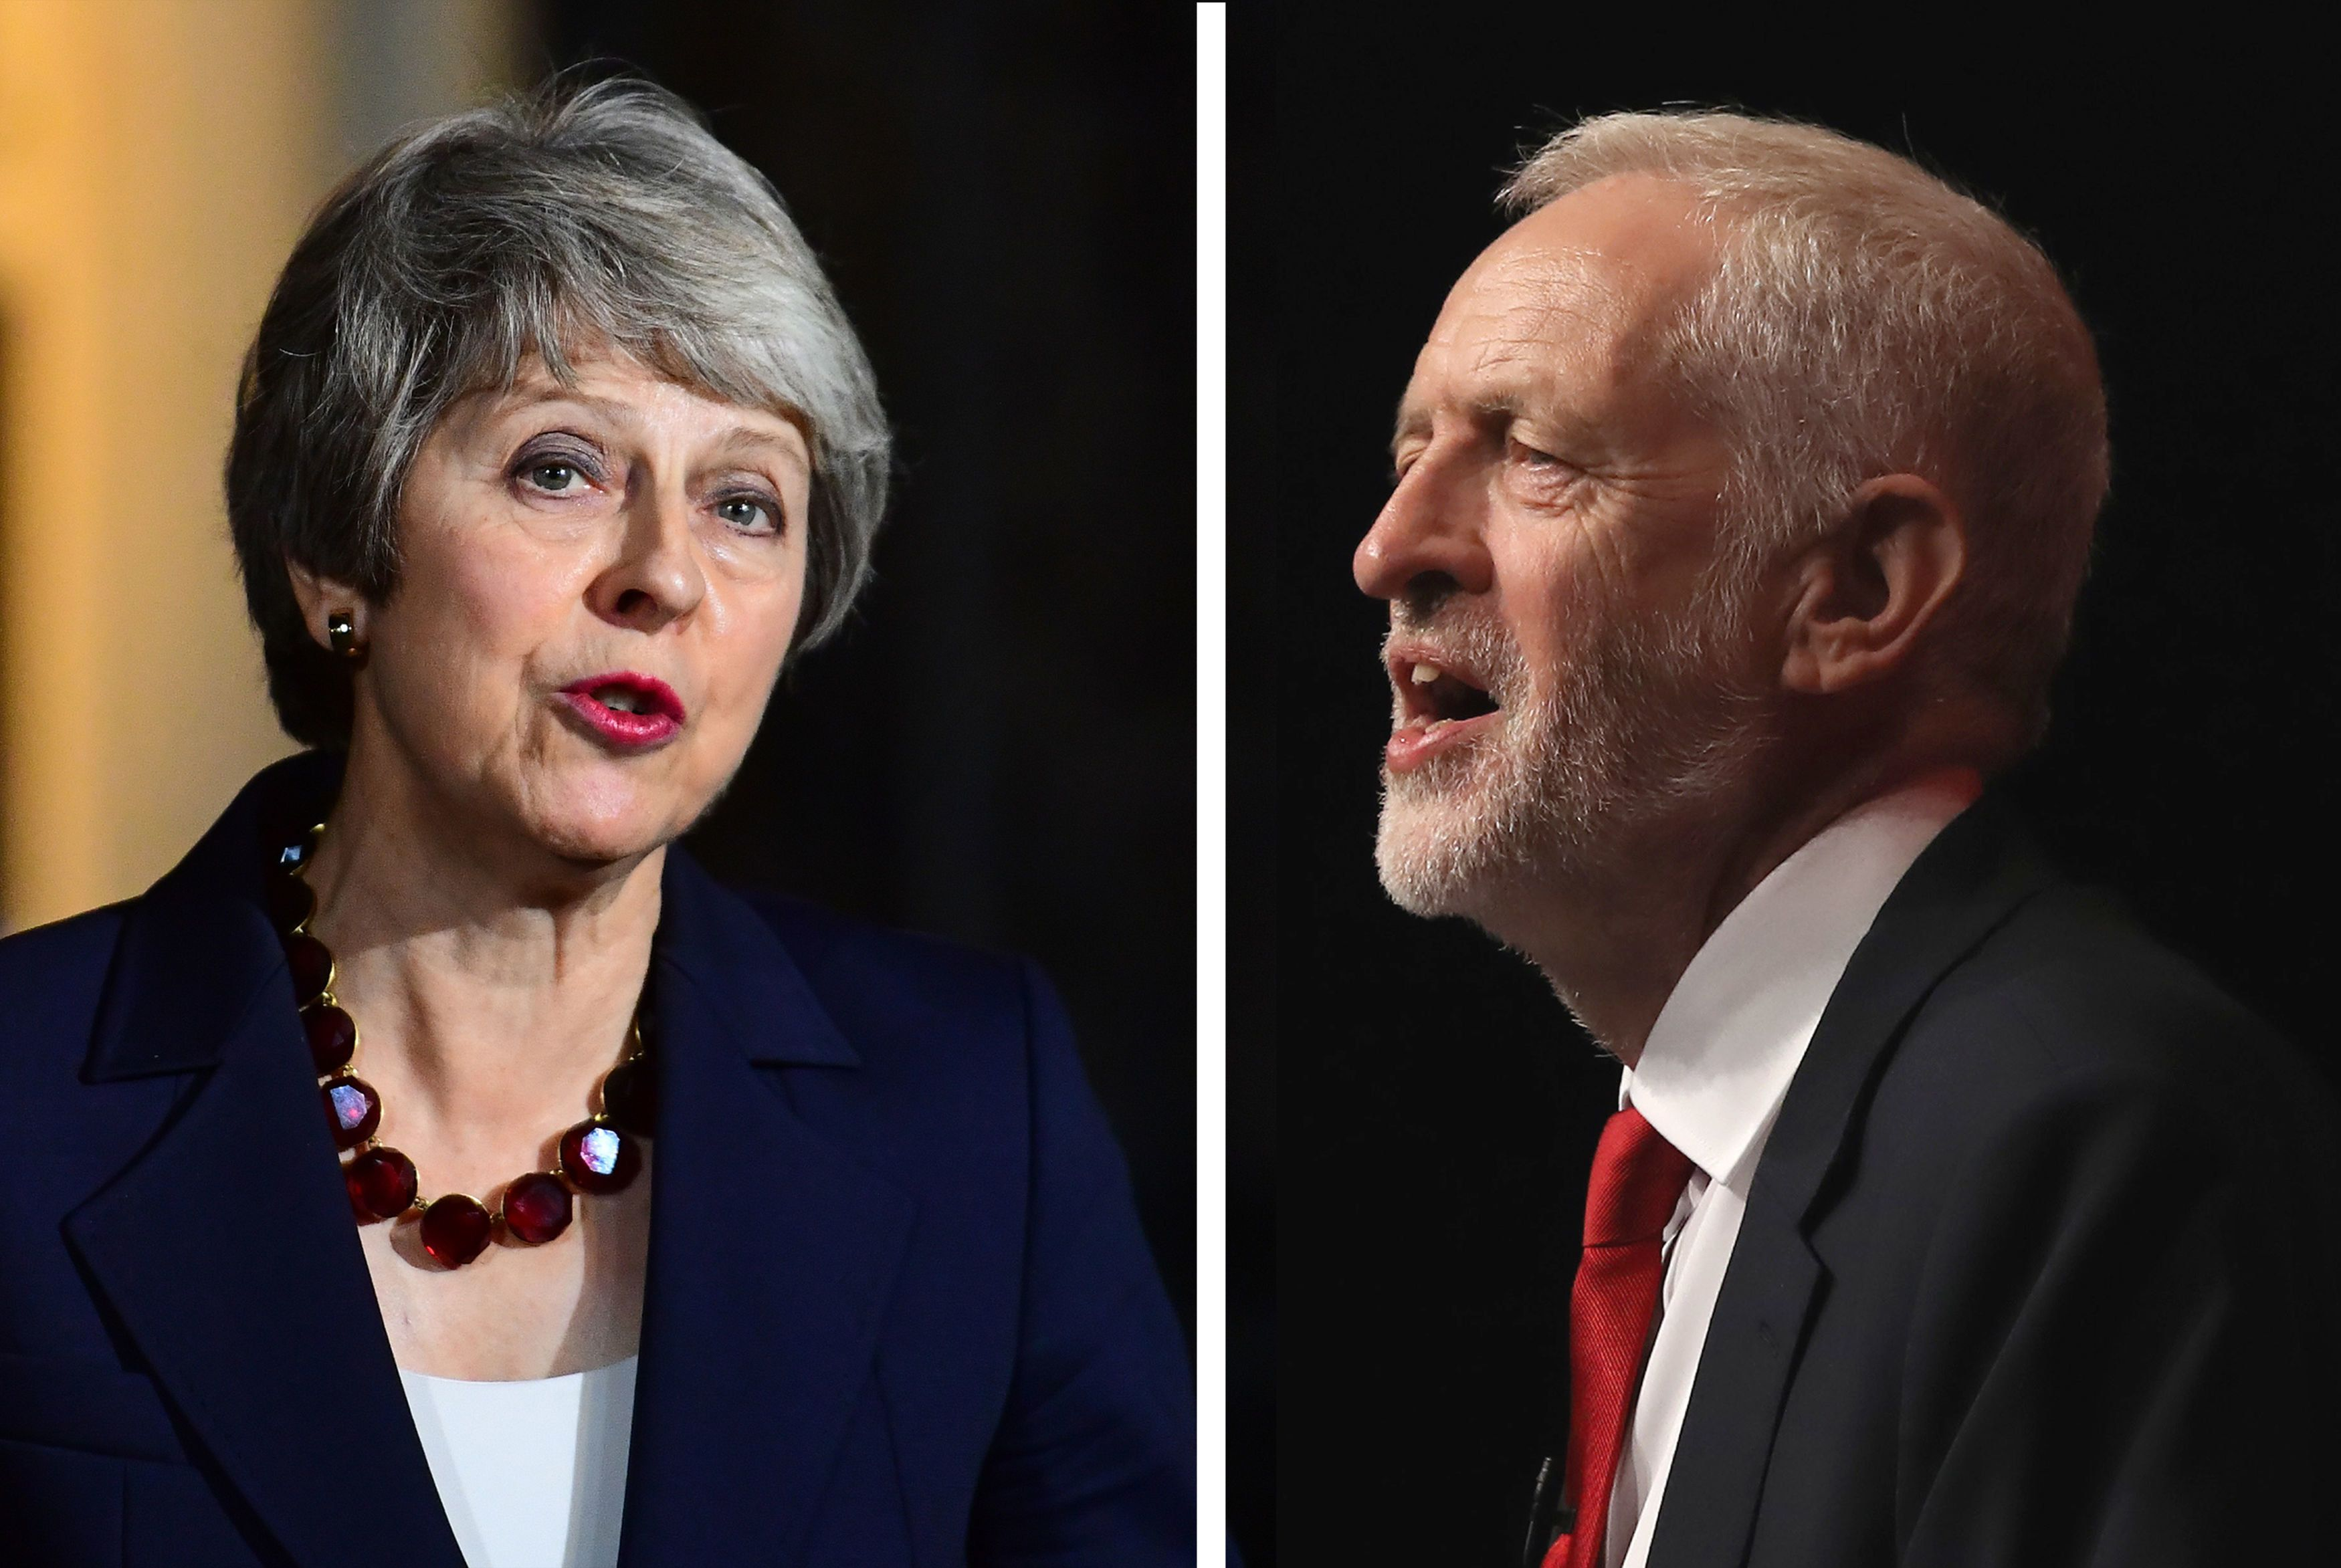 Downing Street Accuses Jeremy Corbyn Of 'Running Scared' From Brexit Television